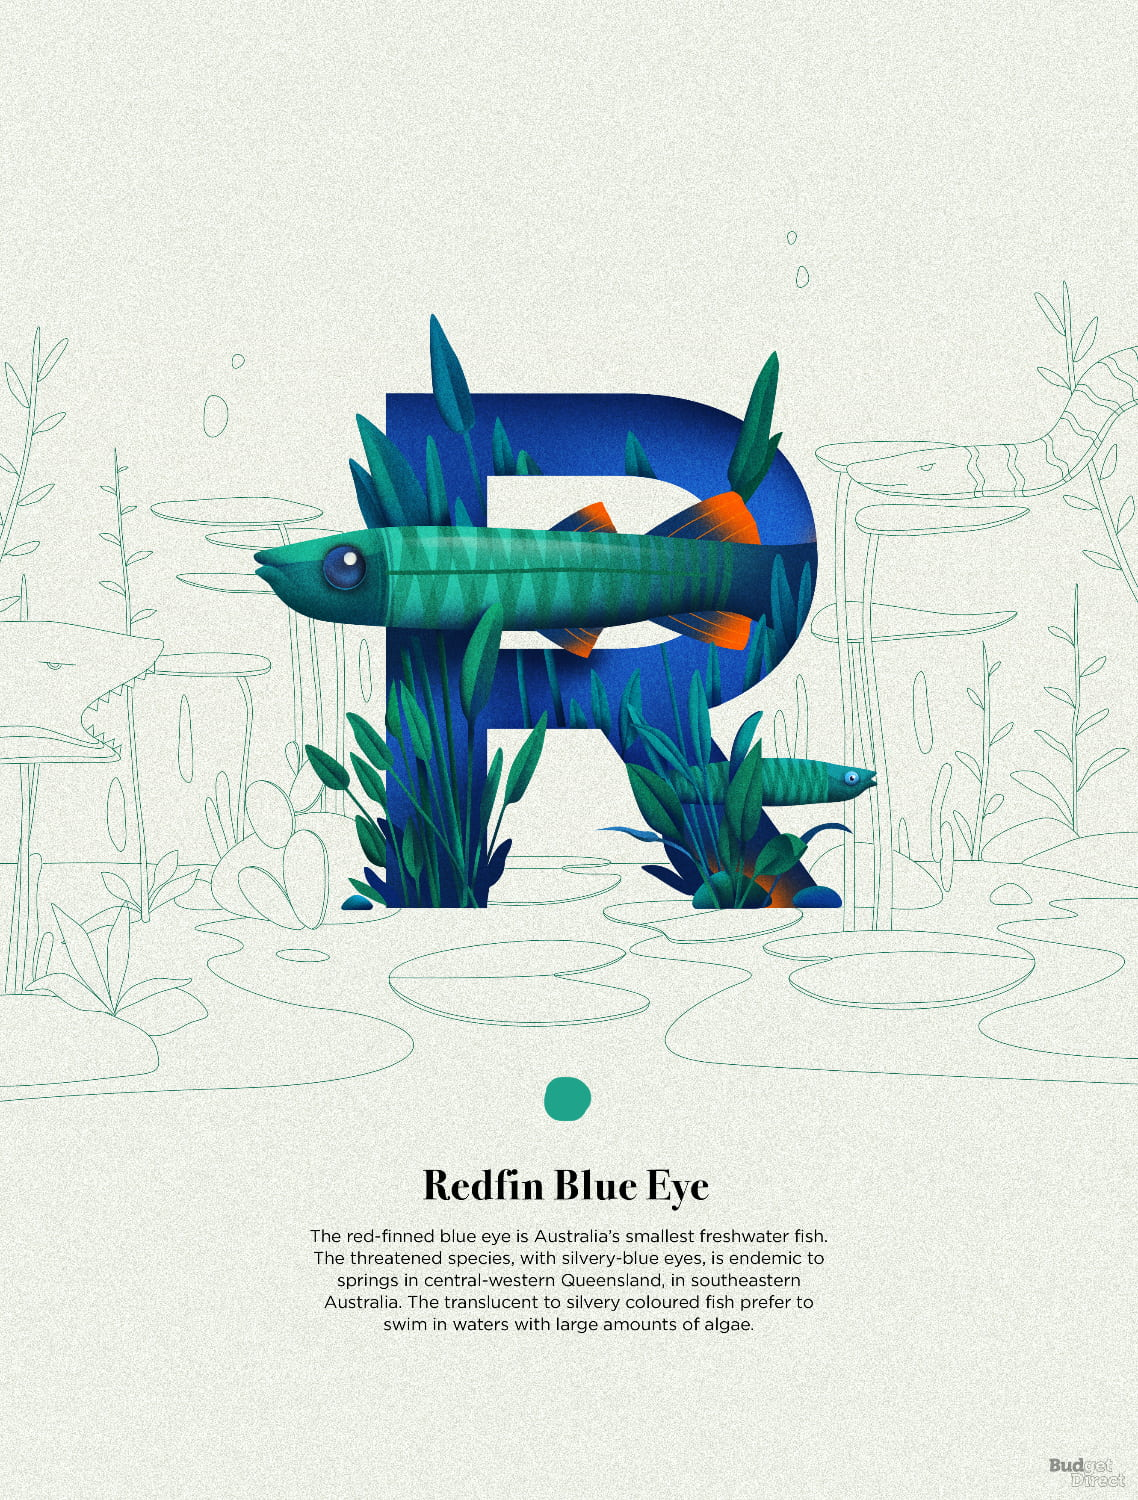 R is for Redfin Blue Eye